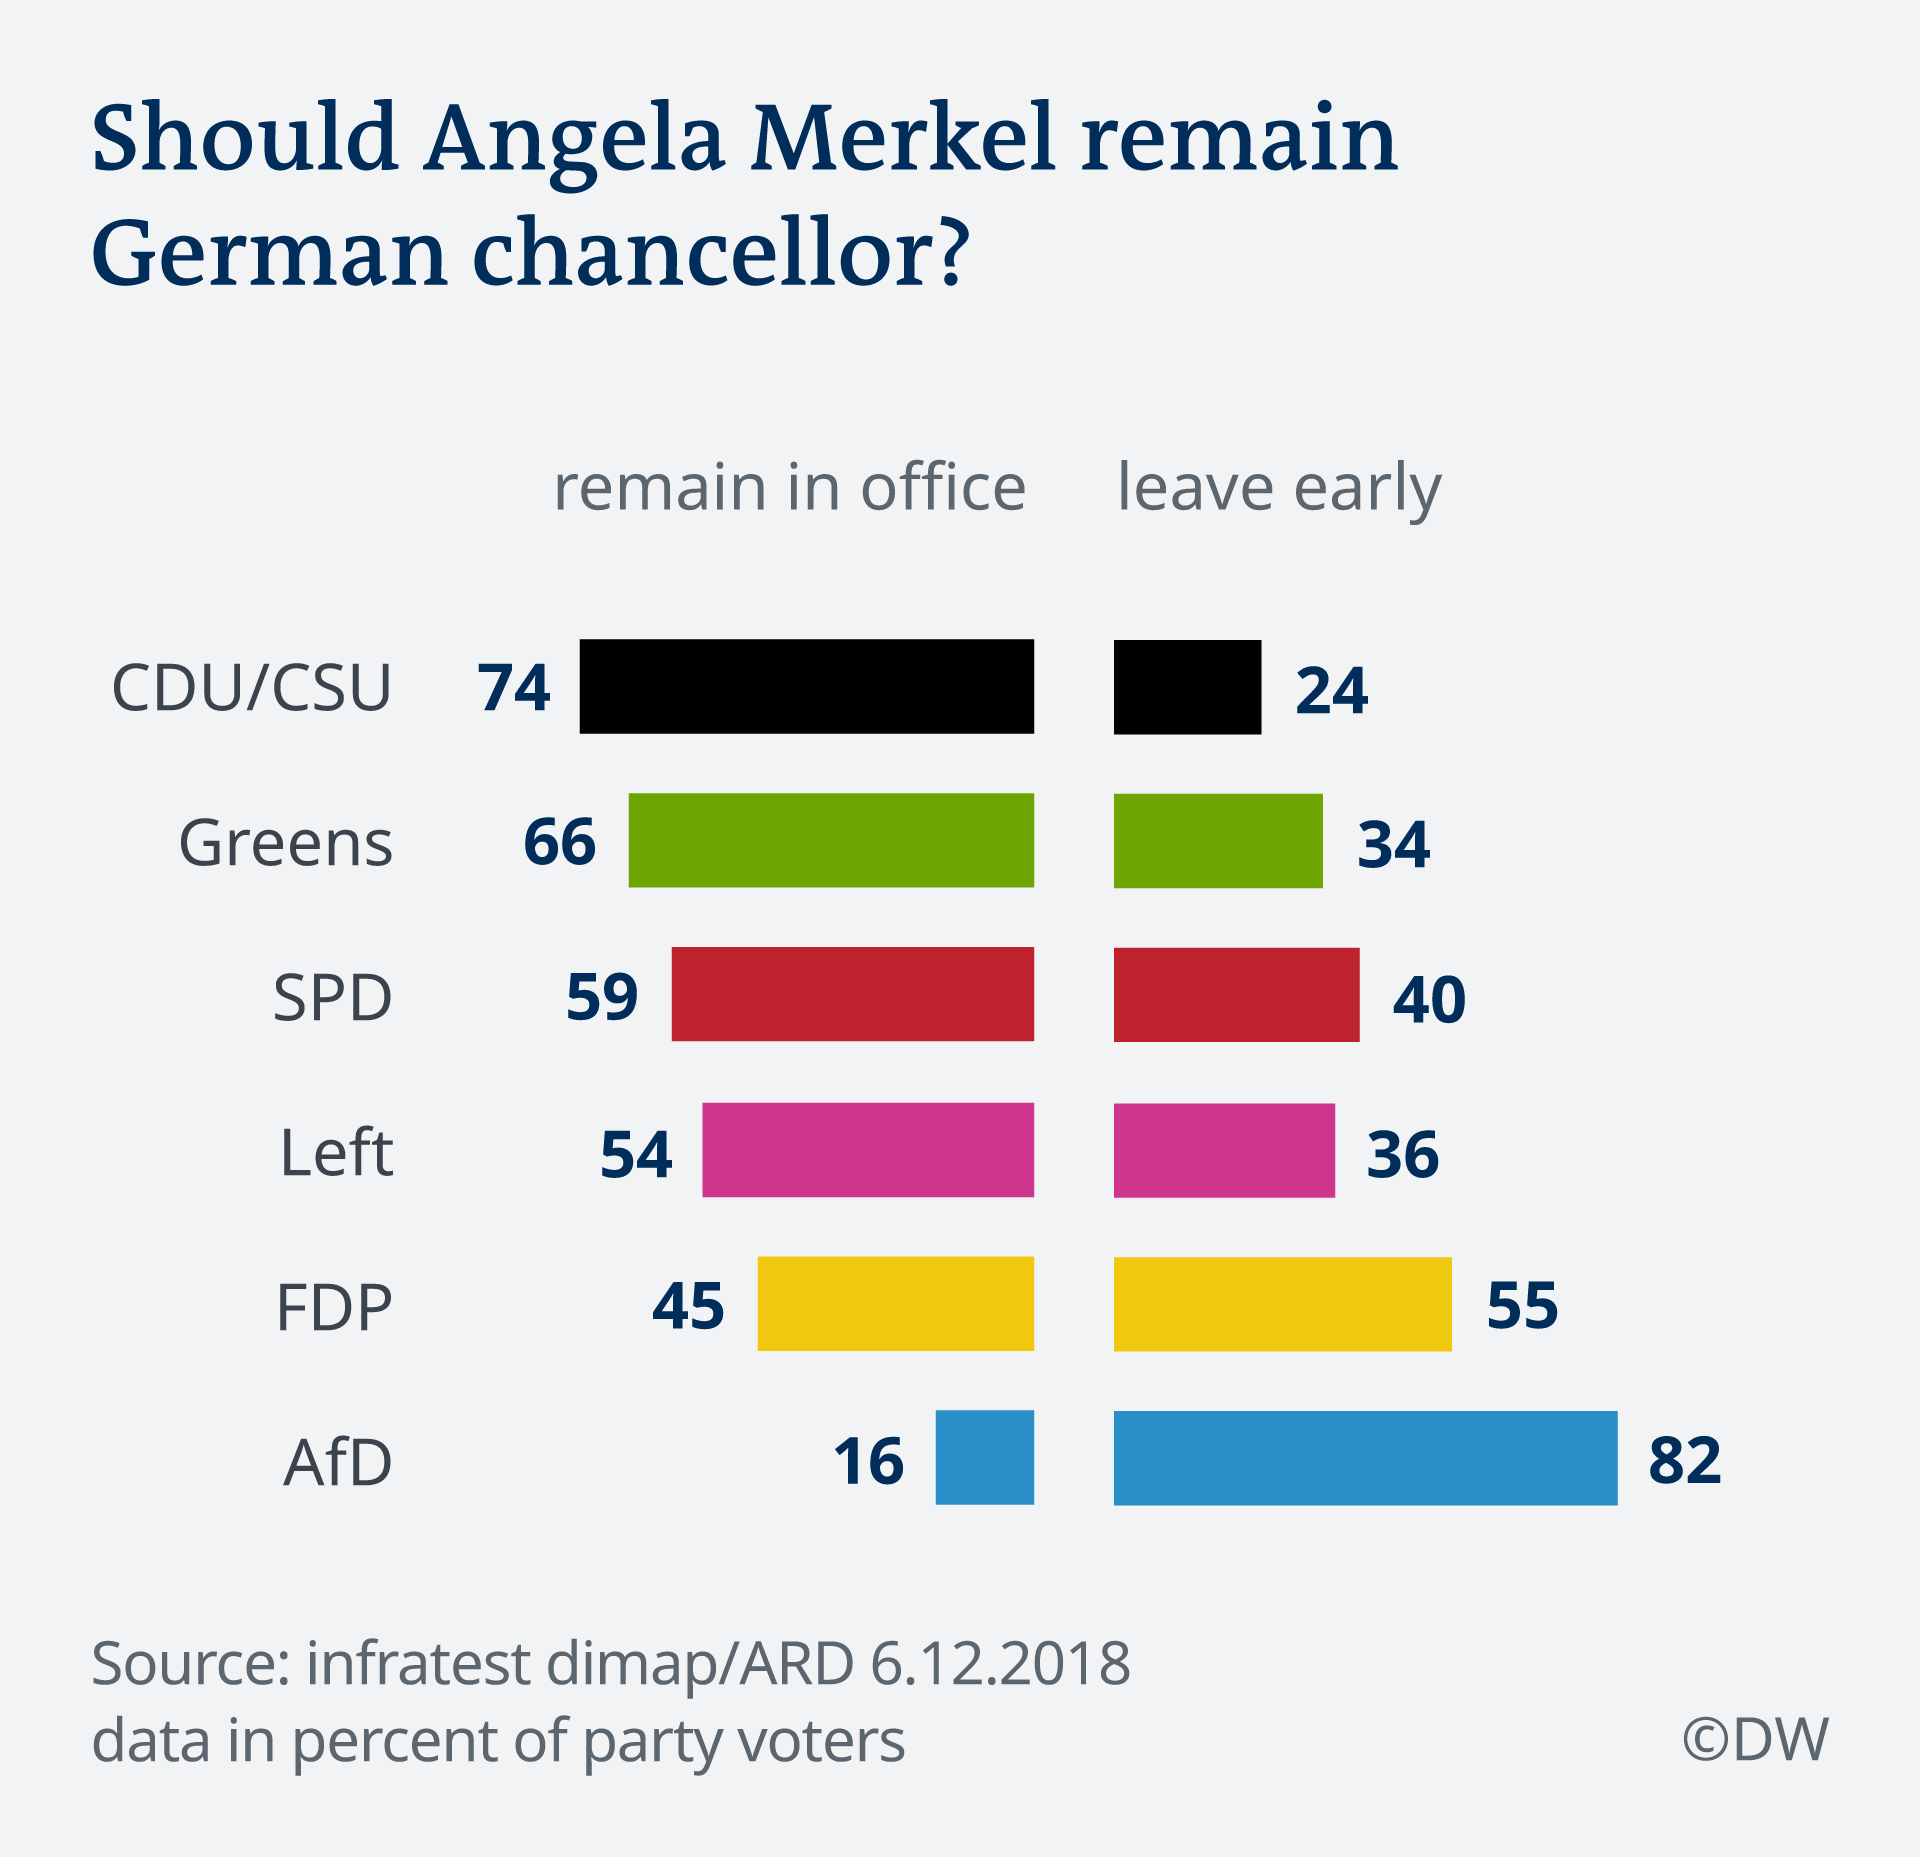 Deutschlandtrend — Should Angela Merkel remain German chancellor?